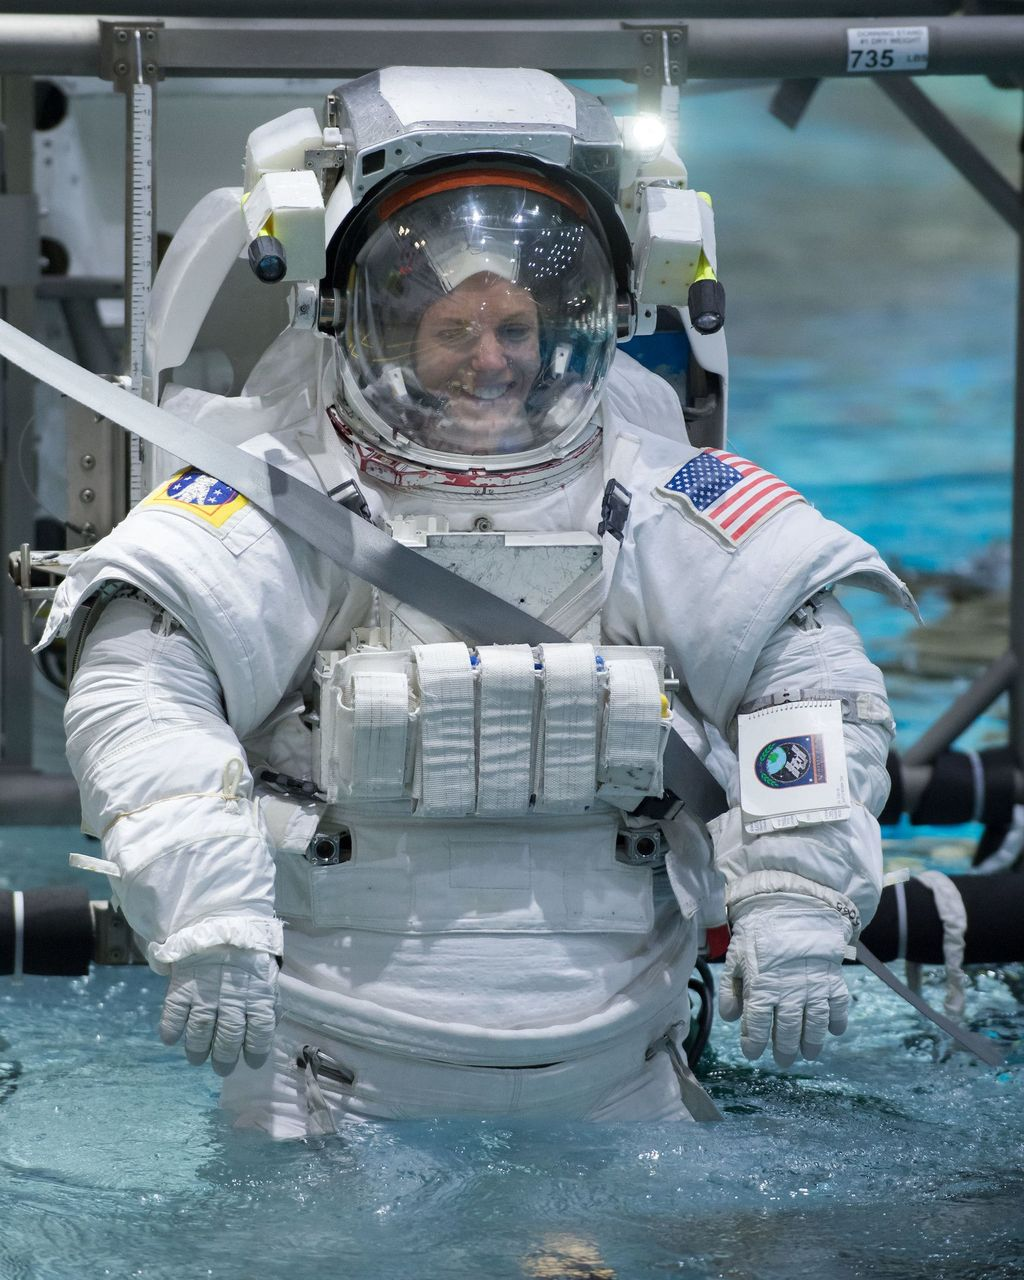 Nantinya para calon astronot akan lulus dari program latihan pada 10 Januari 2020. Mereka bisa mendapat penugasan di International Space Station (ISS), program Artemis, hingga terbang ke Mars. Foto: NASA/David DeHoyos